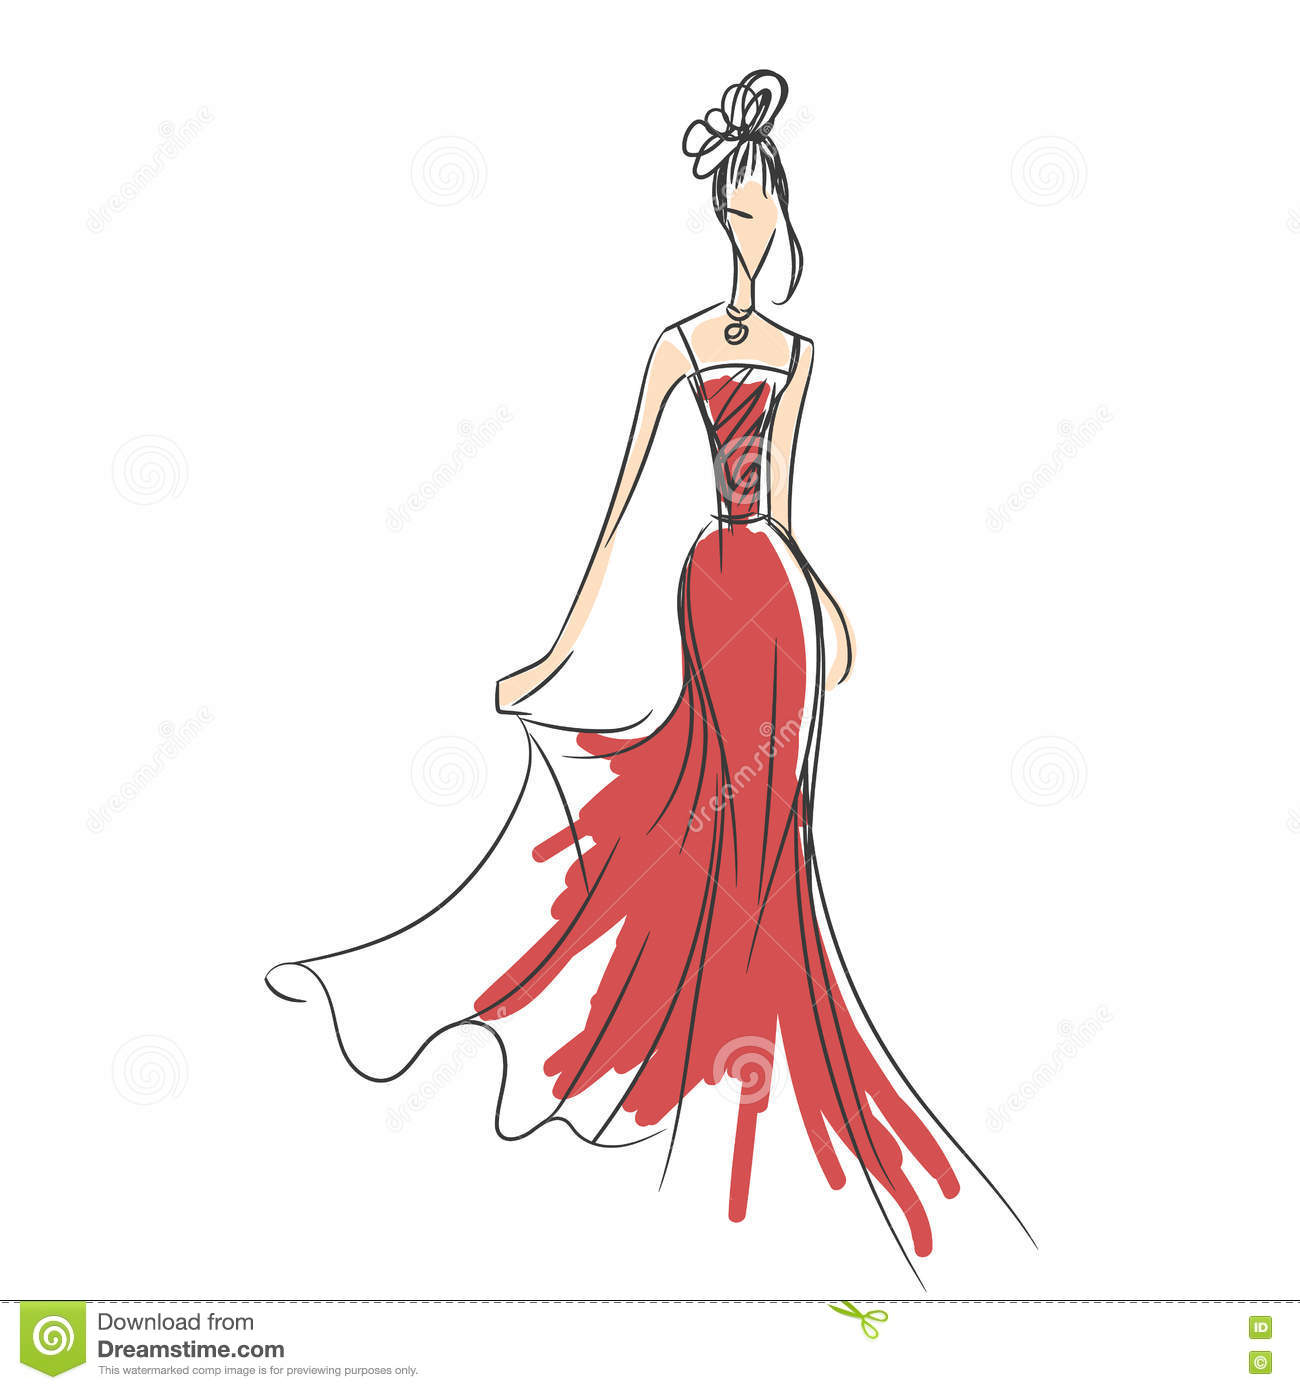 Woman In The Ball Gown Silhouette Illustration 70241728 - Megapixl